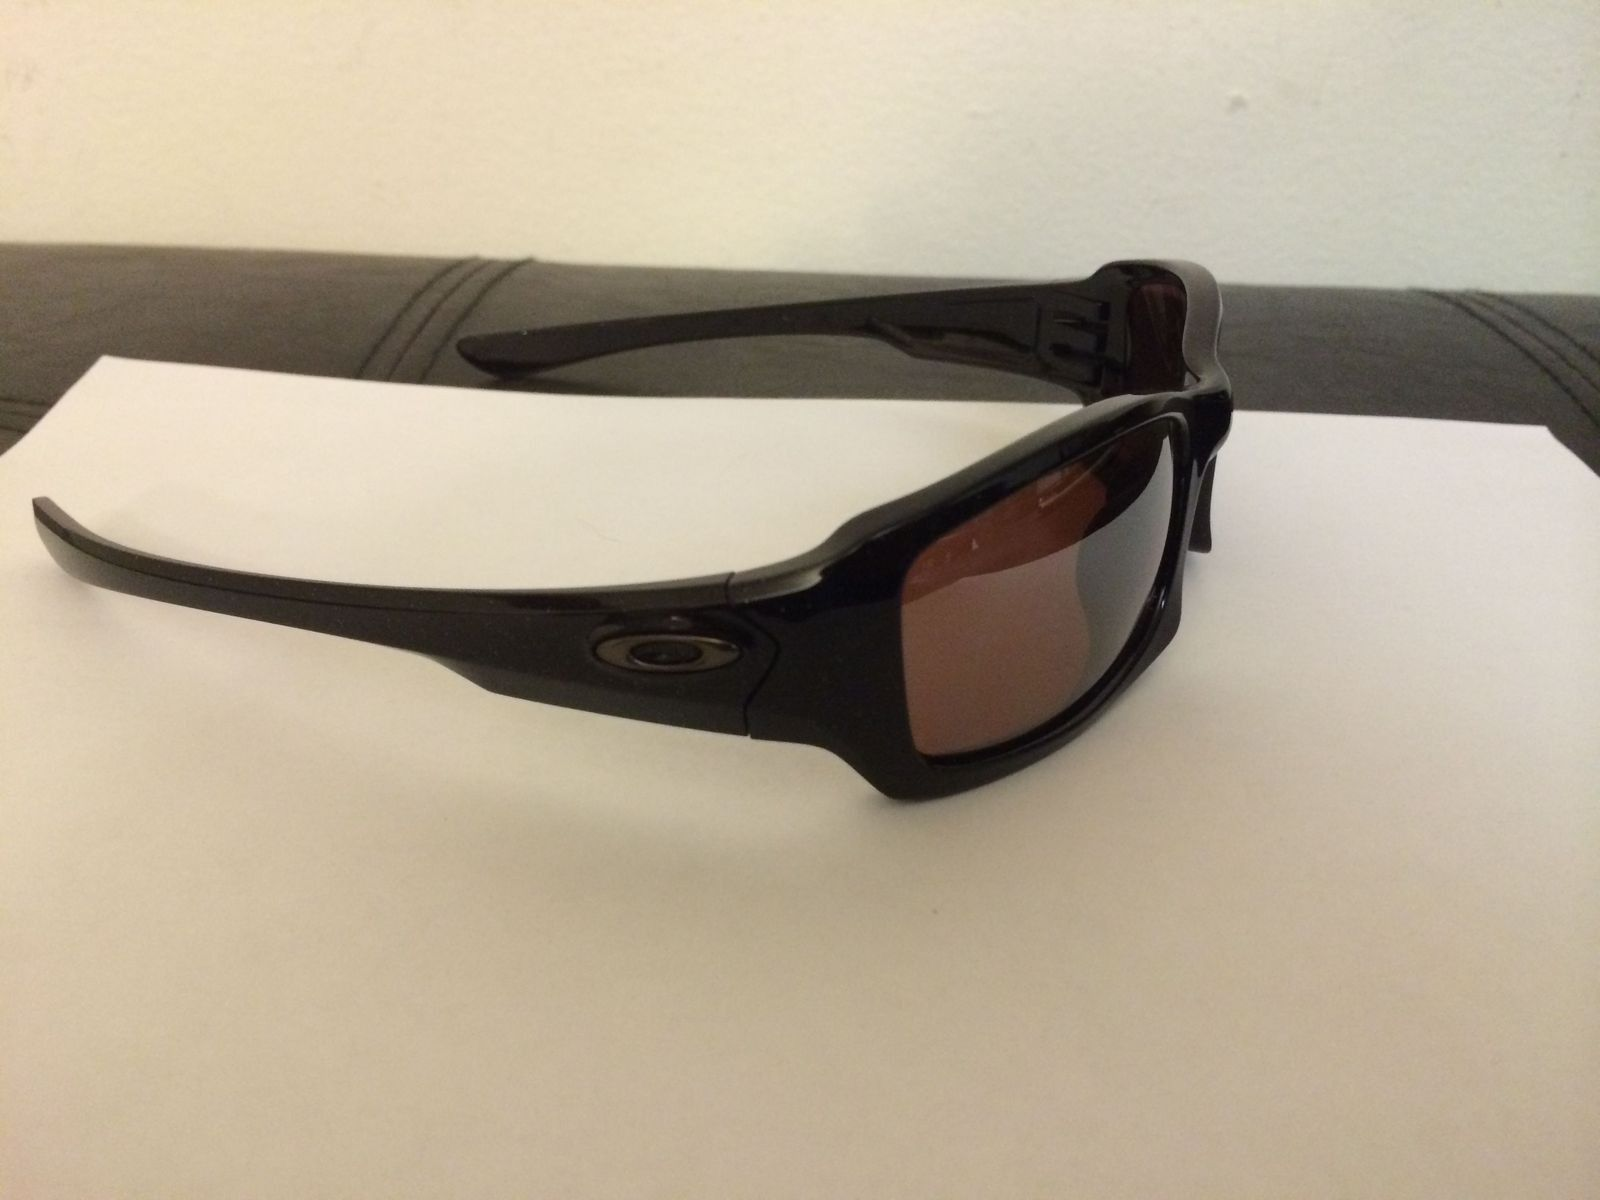 Asian Fit - Metallic Fives 3.0 W/ Polarized Vr28 Black Iridium - d6qlI0x.jpg